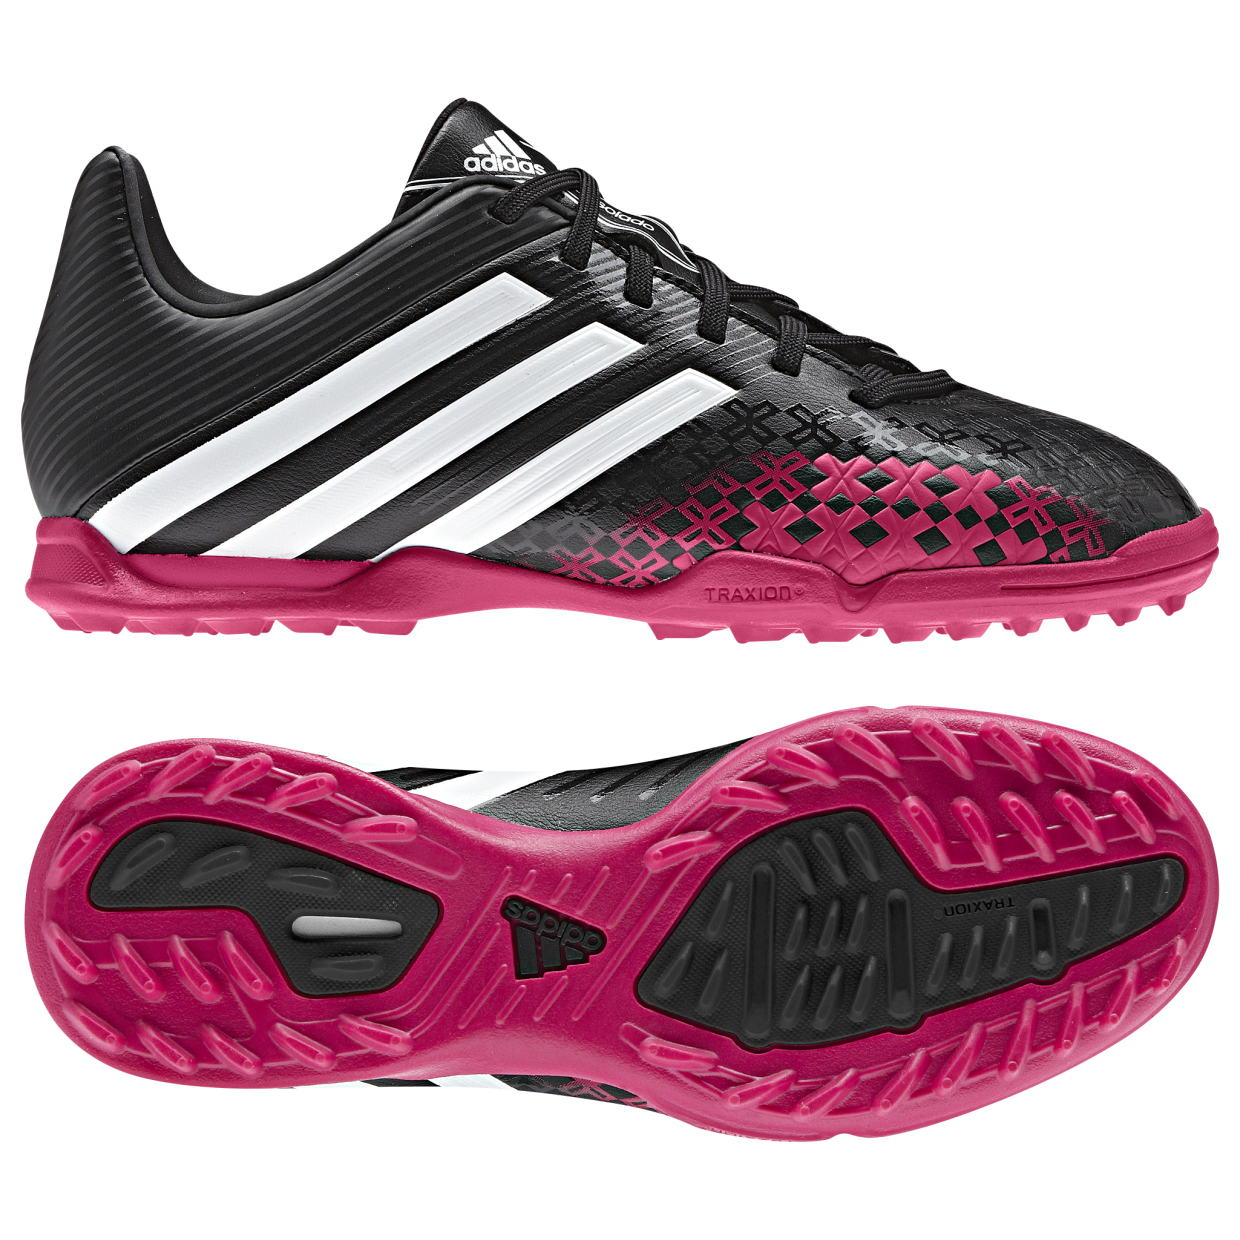 Adidas Predator Absolado LZ TRX Astroturf Trainers - Kids Black